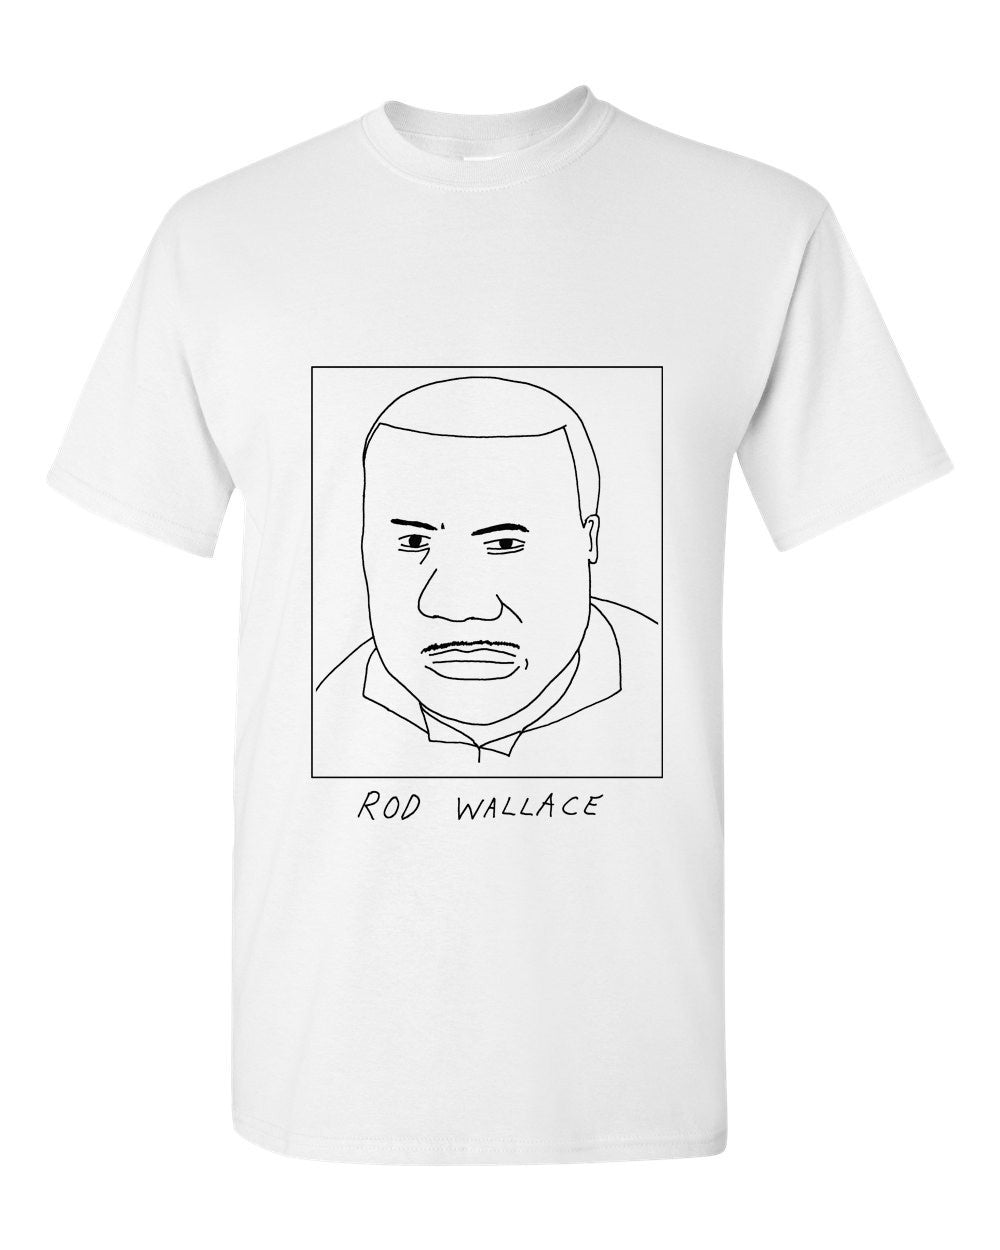 Badly Drawn Rod Wallace T-shirt - 1994 Leeds United